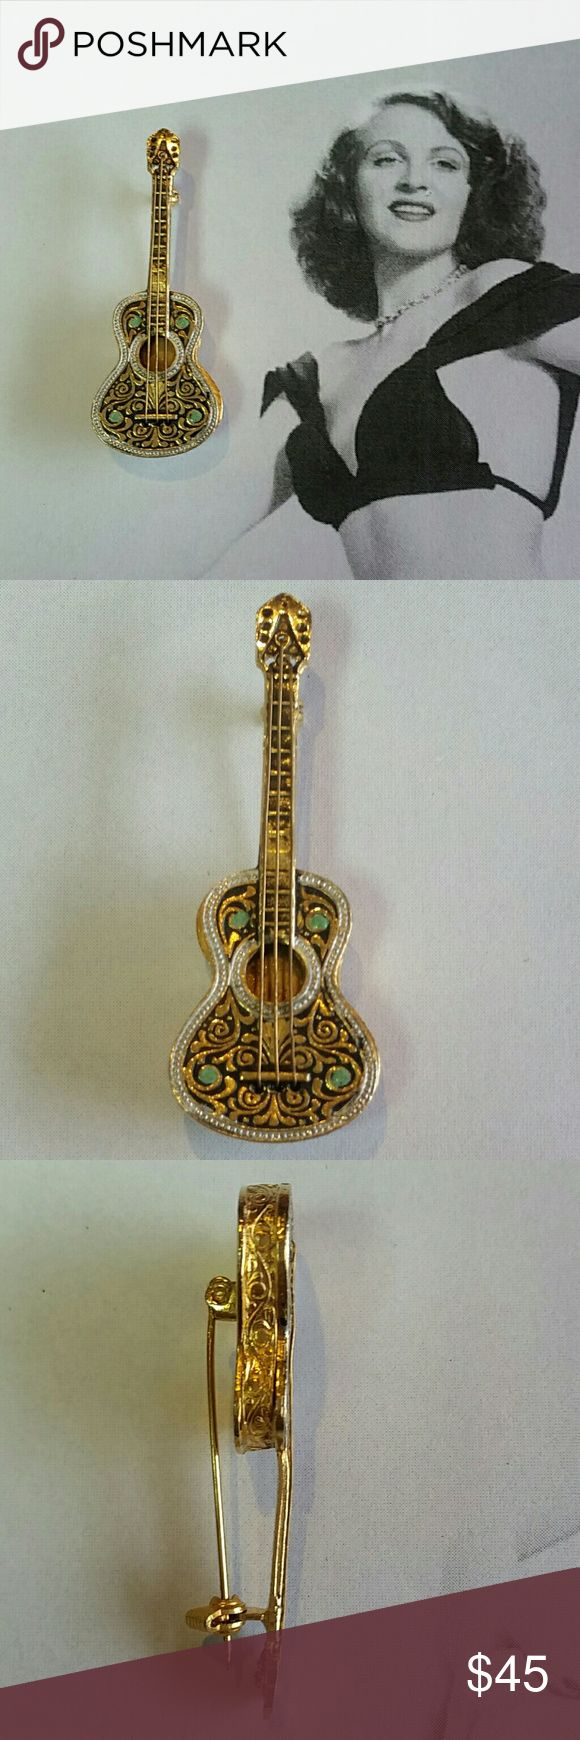 "Vintage Toledoware damascene guitar brooch Vintage Toledoware Damascene acoustic guitar brooch. Measures .75"" wide and 2"" long. Has green enamel applied to 4 points on guitar face. Detailed scrollwork on face of guitar and sides. Excellent vintage condition. Reasonable offers accepted. Add to a bundle and I will offer you my best price. :) Vintage Jewelry Brooches"